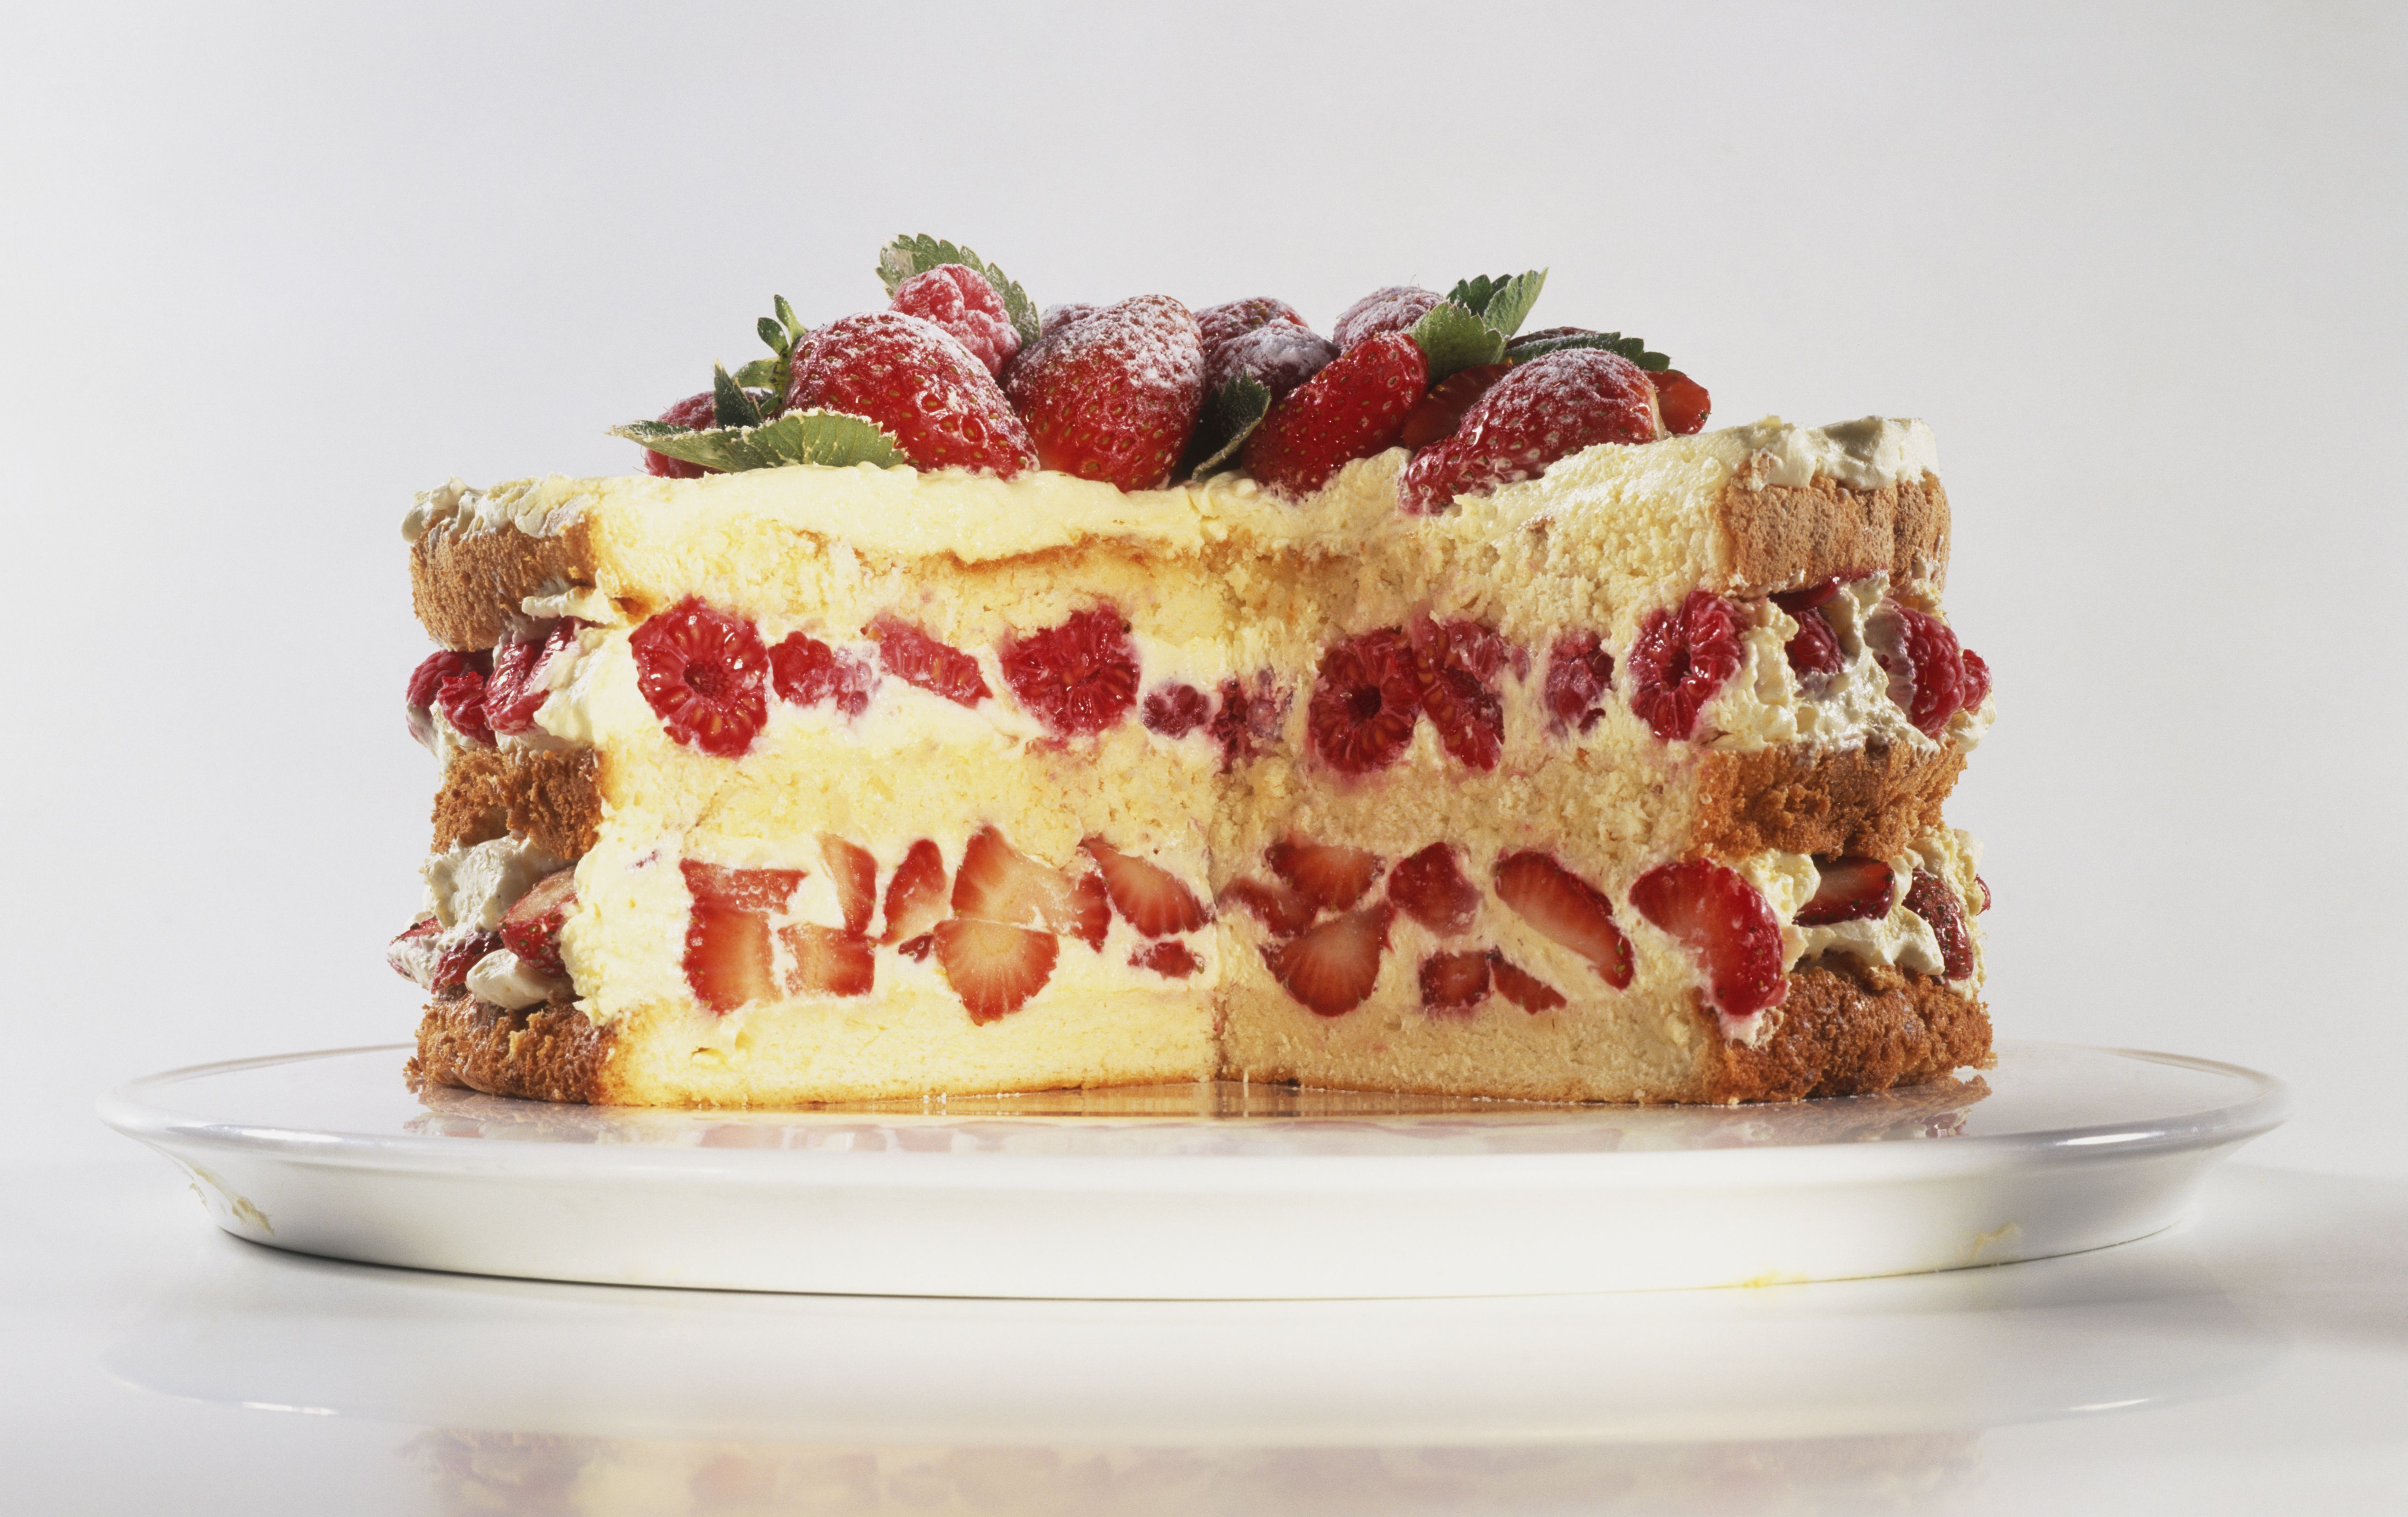 Biscuit de Savoie, layered cream, strawberry and raspberry cake with slice removed, front view